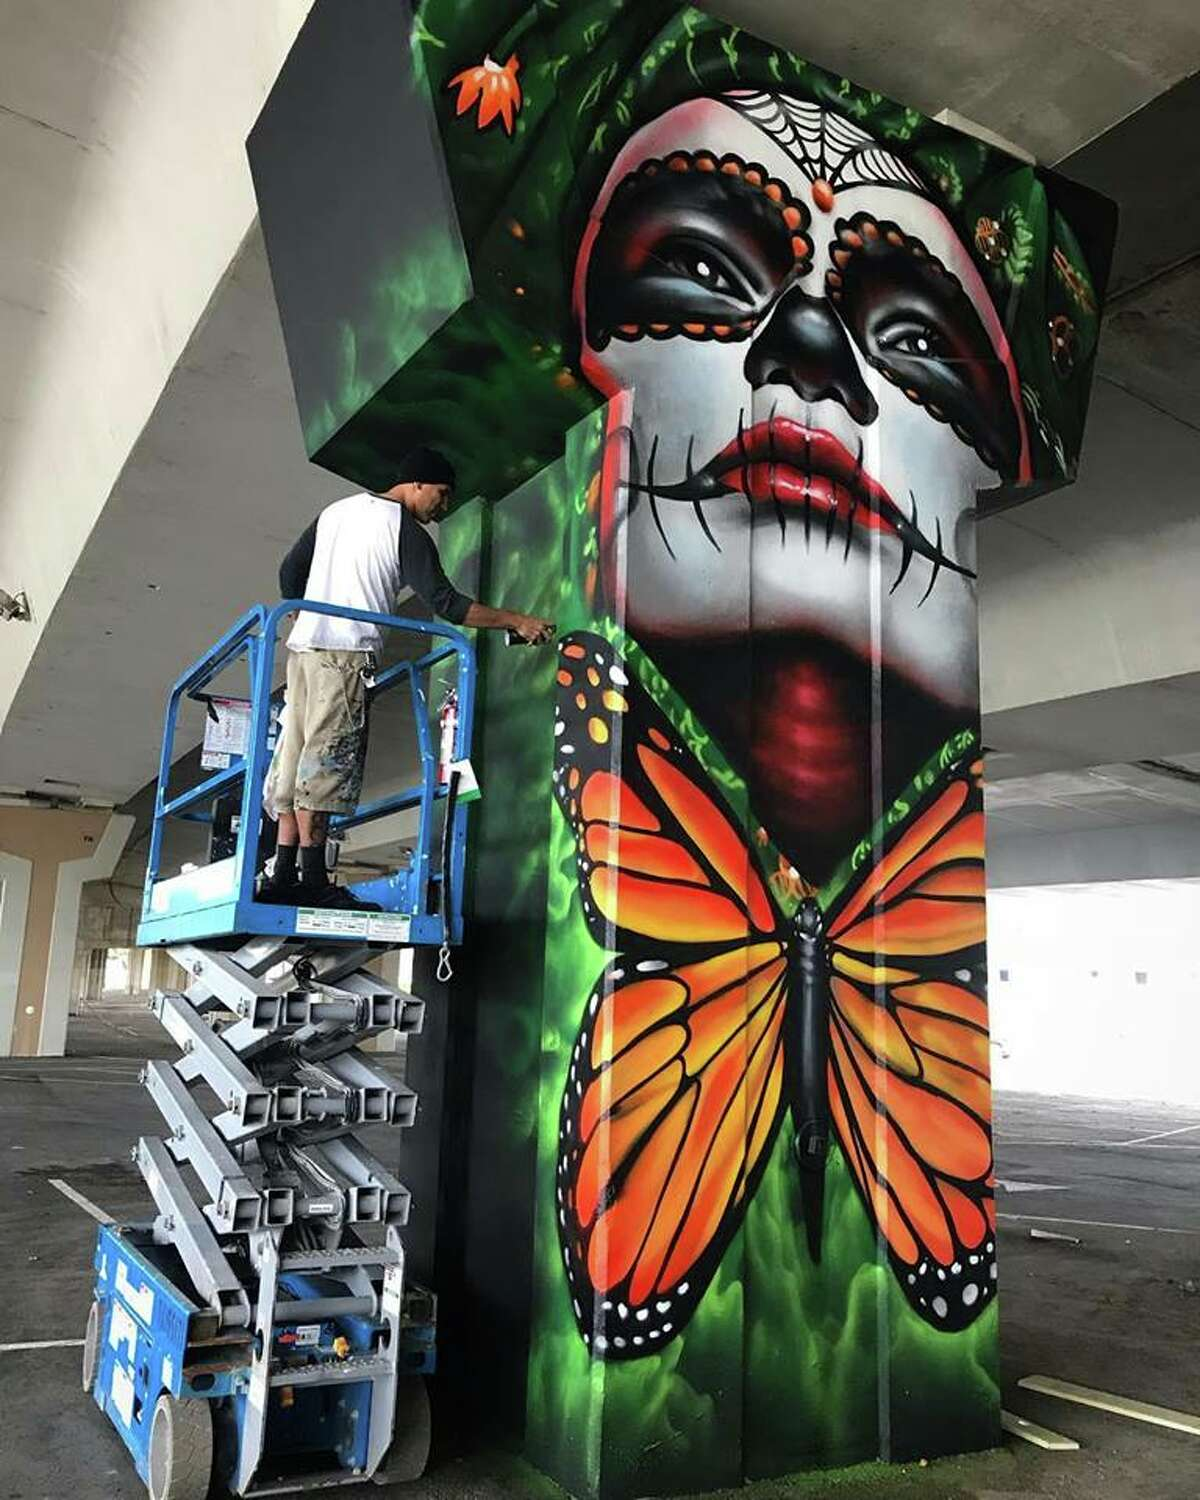 Nik Soupe, Shek Vega Soupe and Vega created murals that changed street art in San Antonio. Shek Vega also founded the San Antonio Street Art Initiative in 2018 with a mission to educate and inspire the public to